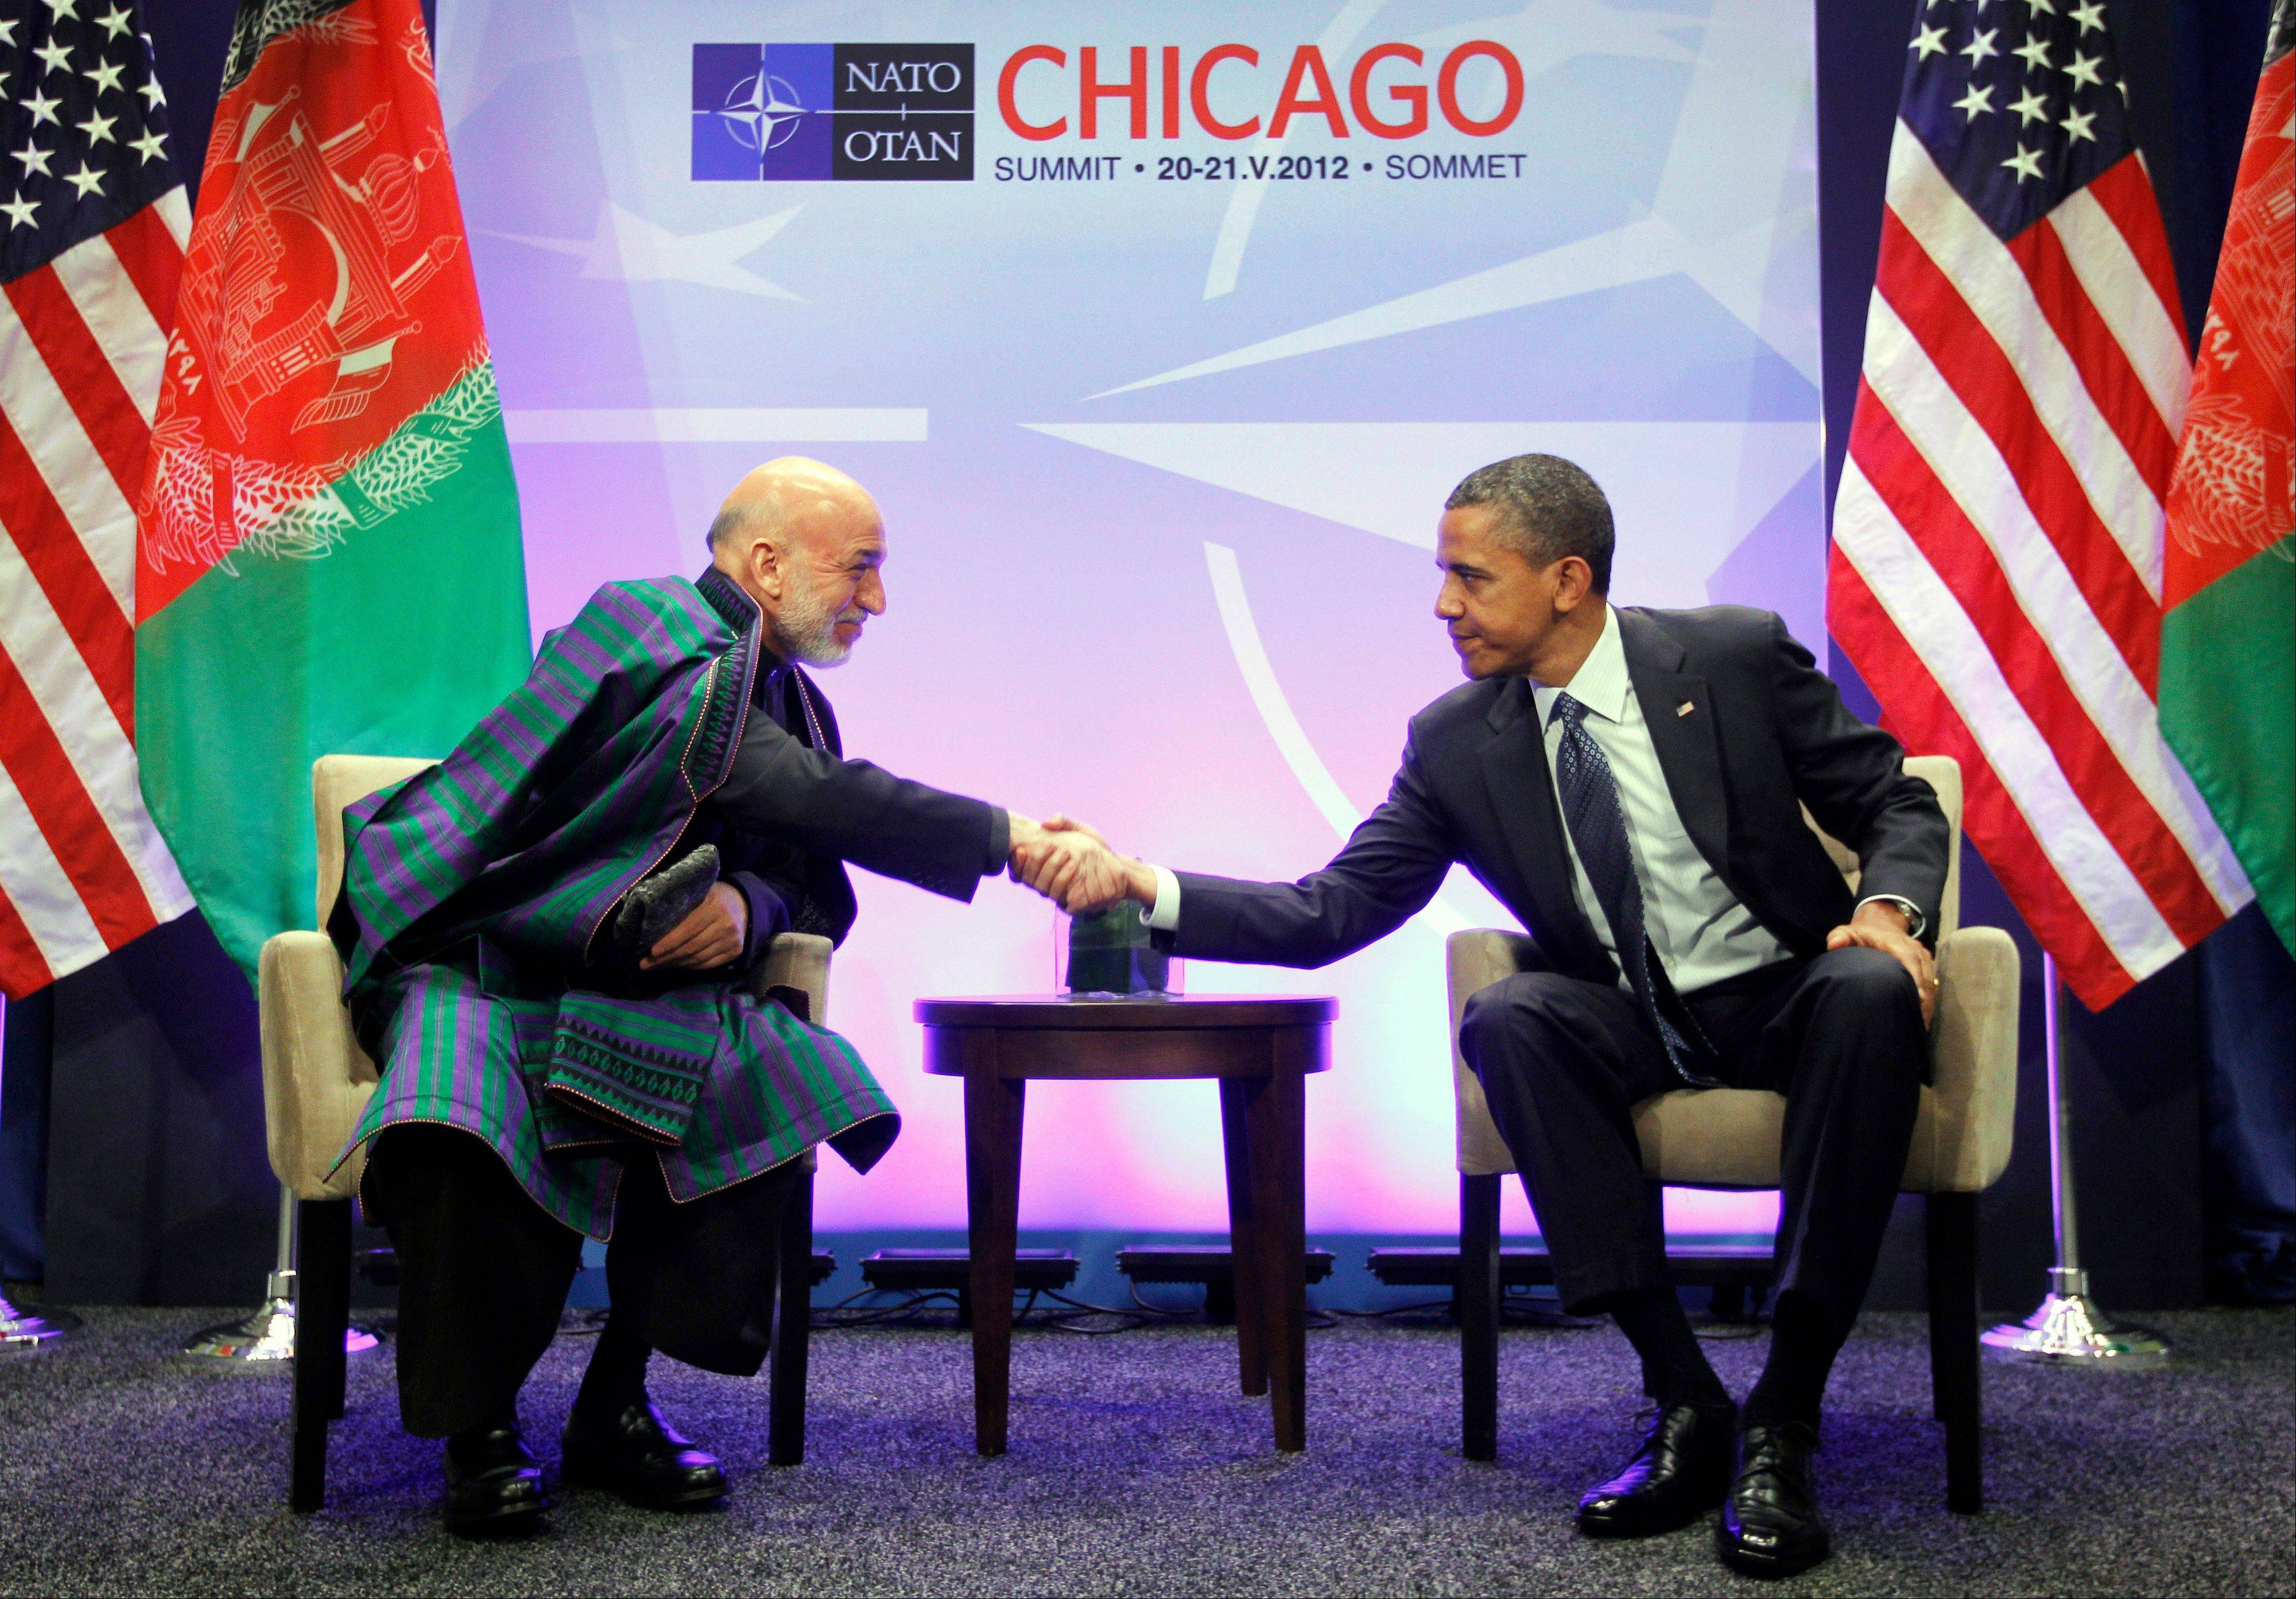 President Barack Obama, right, meets with Afghan President Hamid Karzai, left, during their meeting at the NATO Summit in Chicago last May 20. The Obama administration gave the first explicit signal Tuesday it might leave no troops in Afghanistan after December 2014.